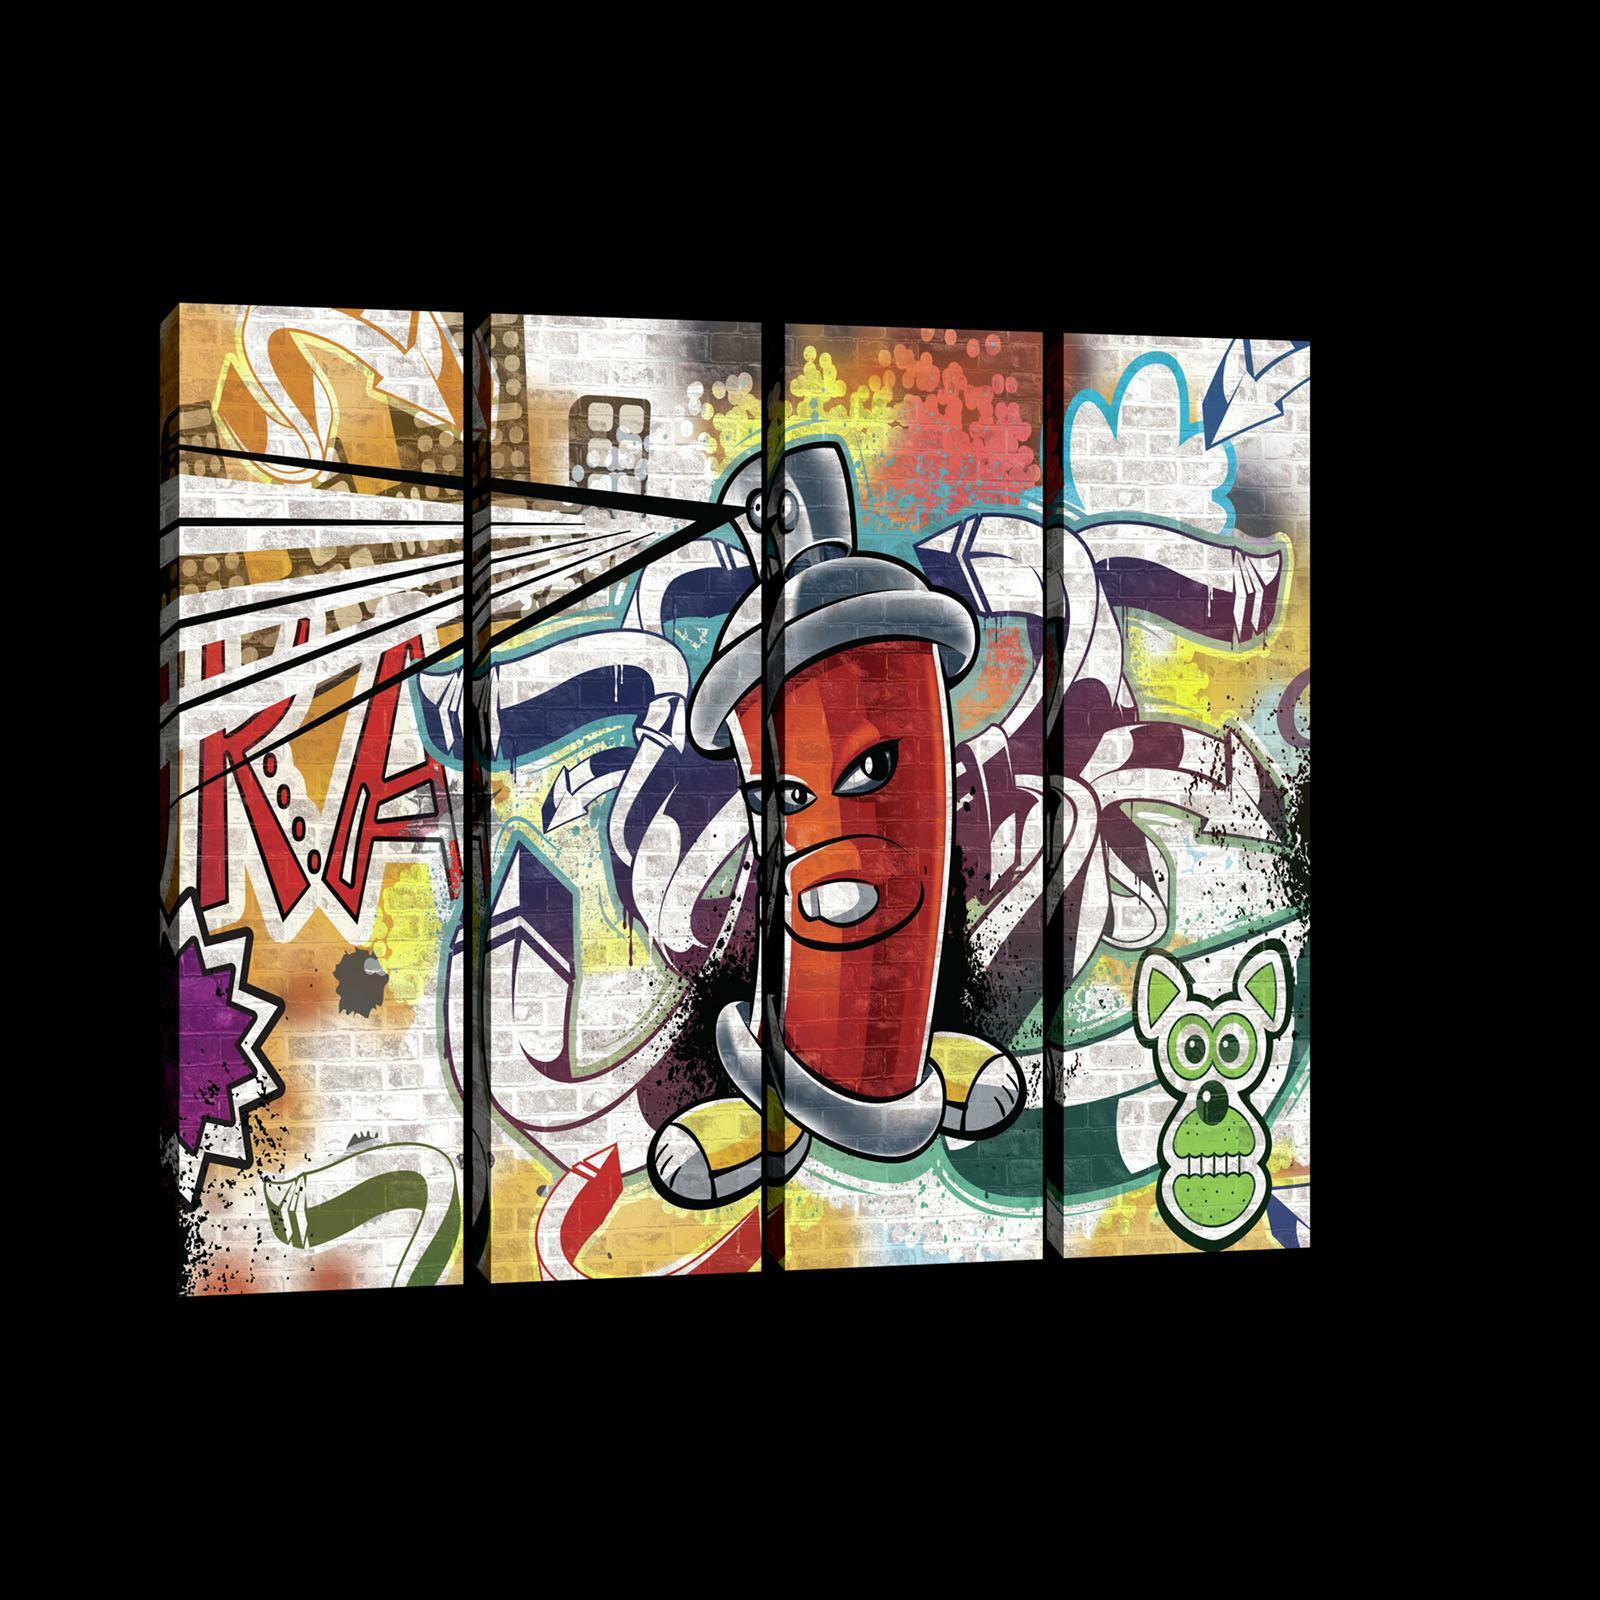 La fresque Toile Art Imprimé 20212_ps7-1 CANVAS PICTURE Print Rouge Graffiti